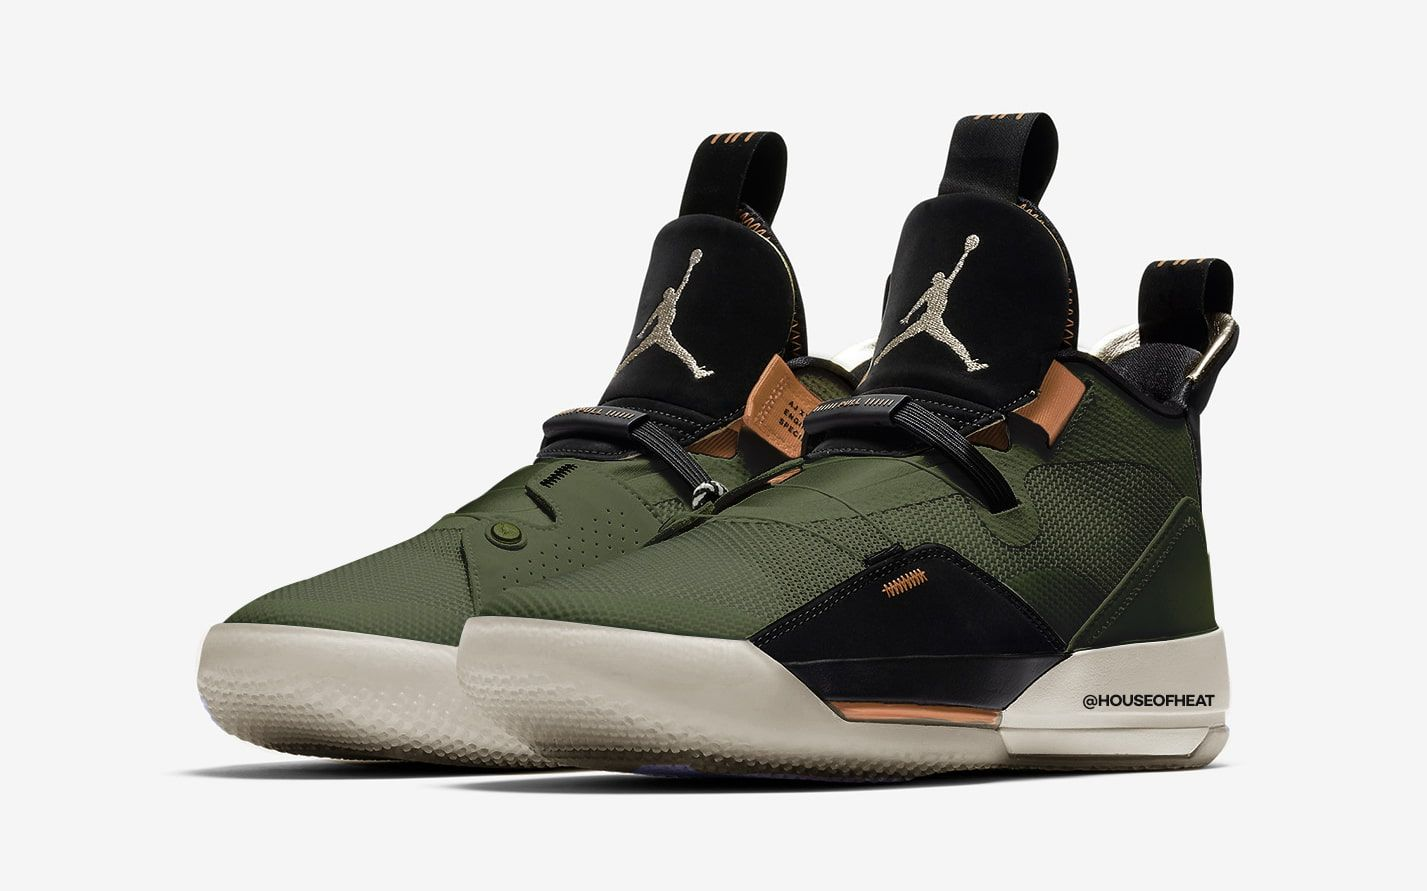 the cheapest official images first look First Looks at the Travis Scott x Air Jordan 33 👀 - HOUSE ...